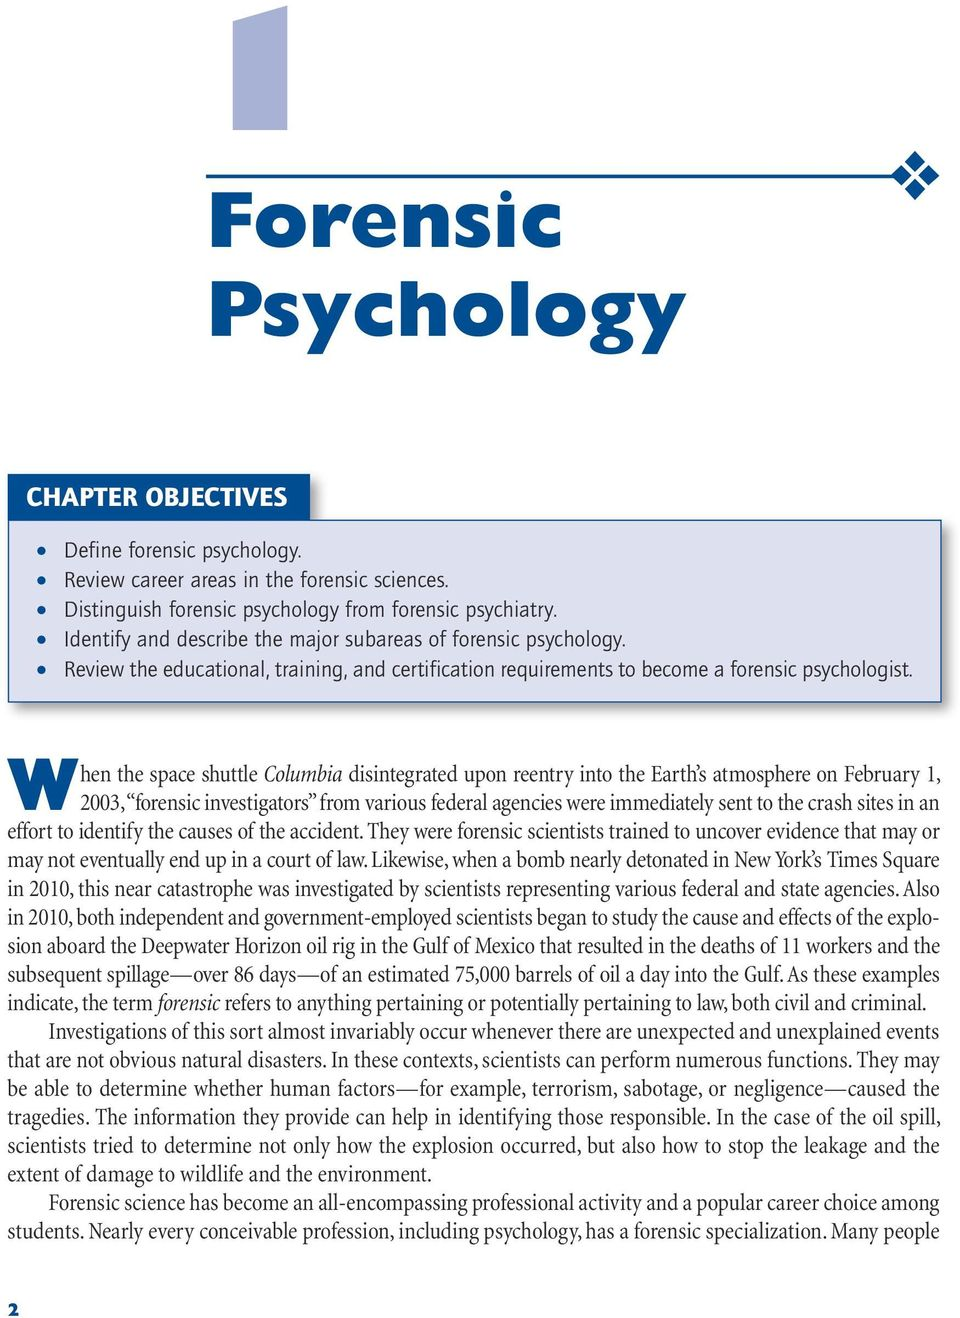 Forensic Psychology Chapter Objectives Pdf Free Download